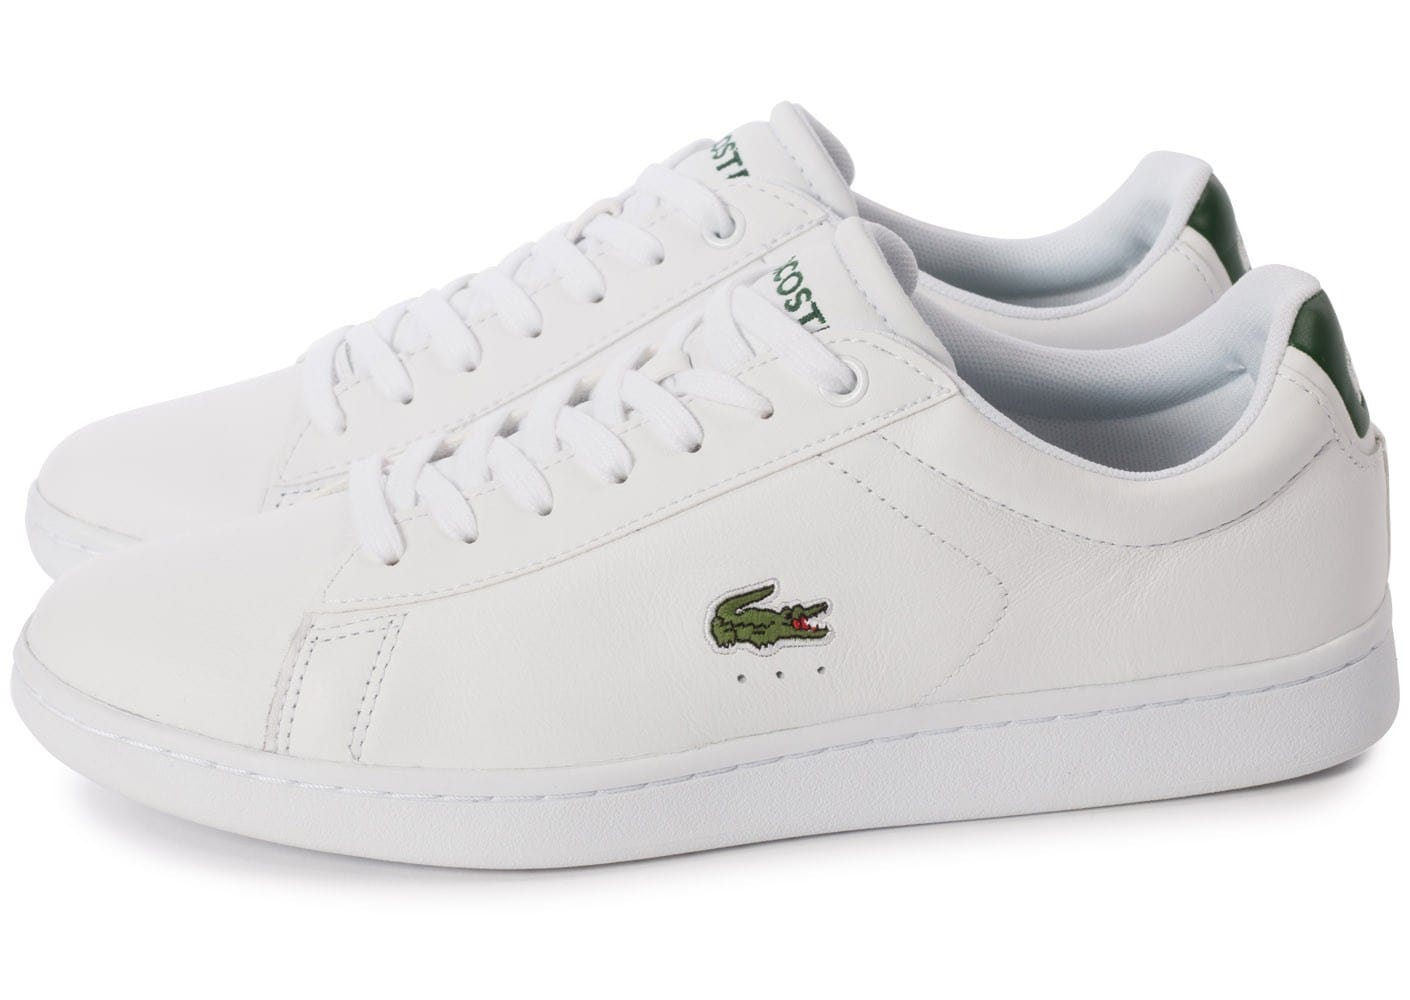 Lacoste Baskets basses Carnaby Blanc et vert PwKMXO